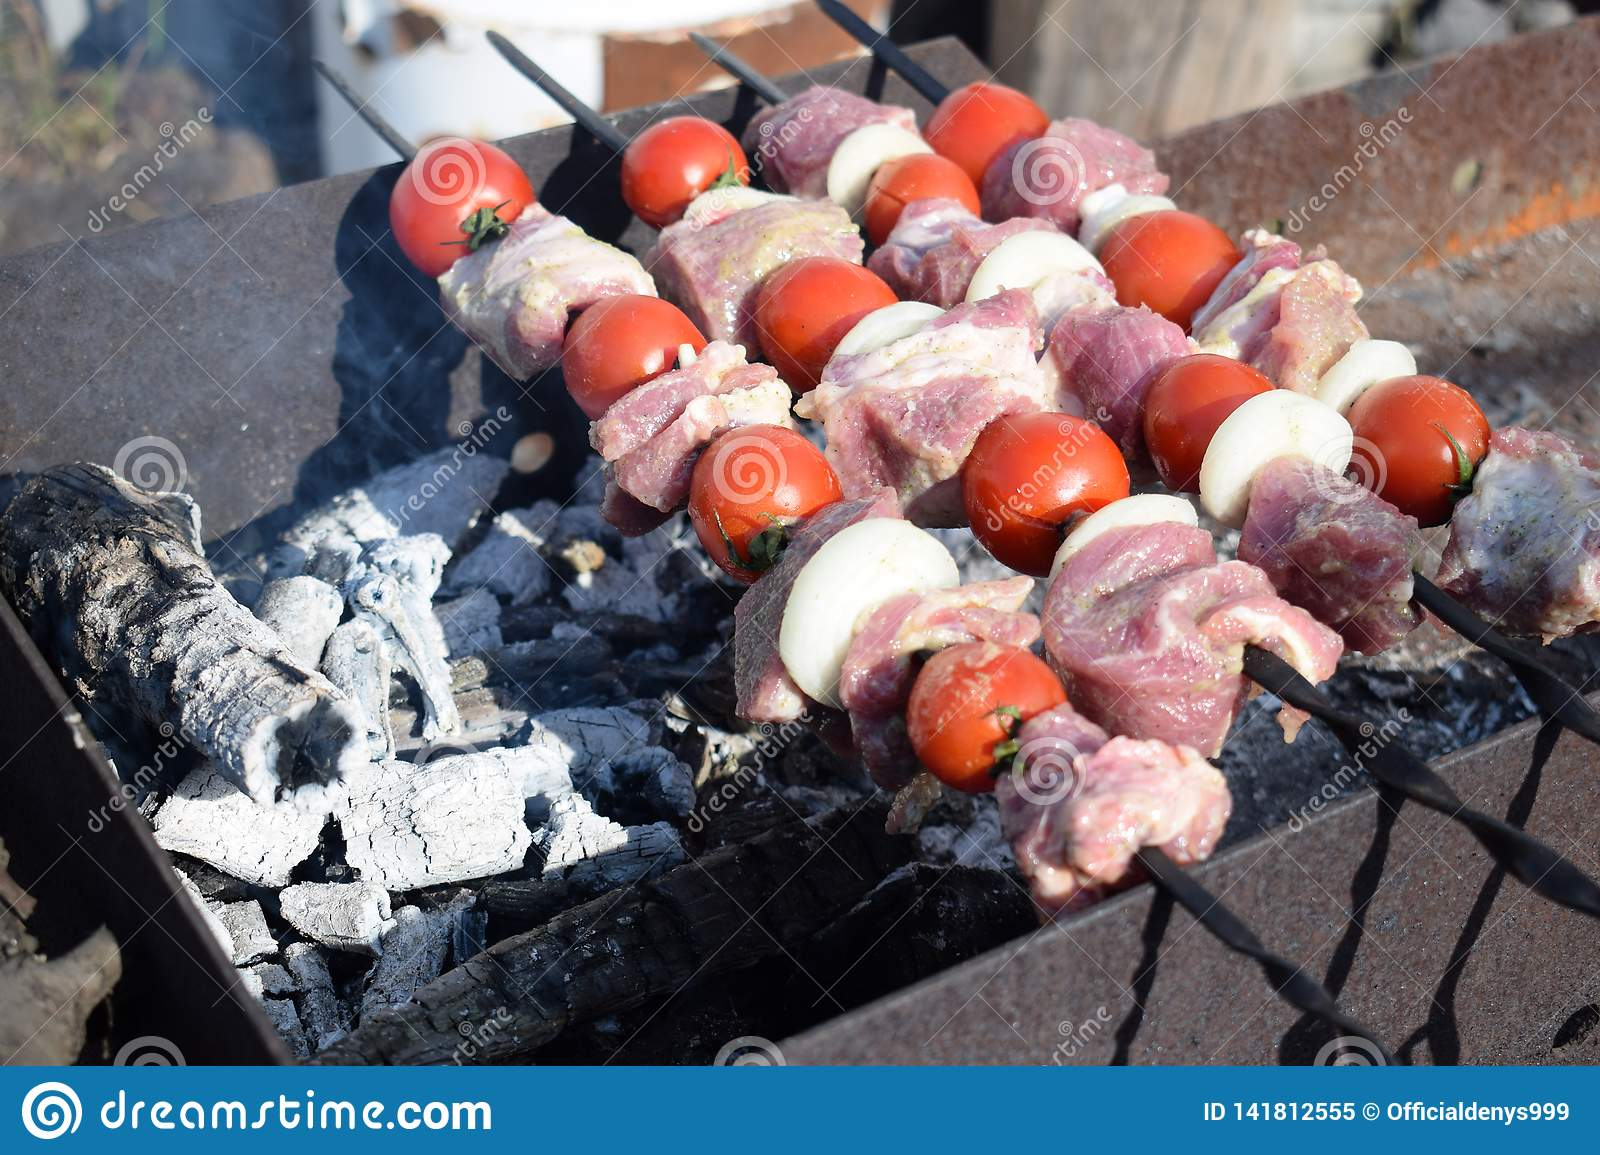 Fresh pork meat with vegetables grilled. Cooking in nature